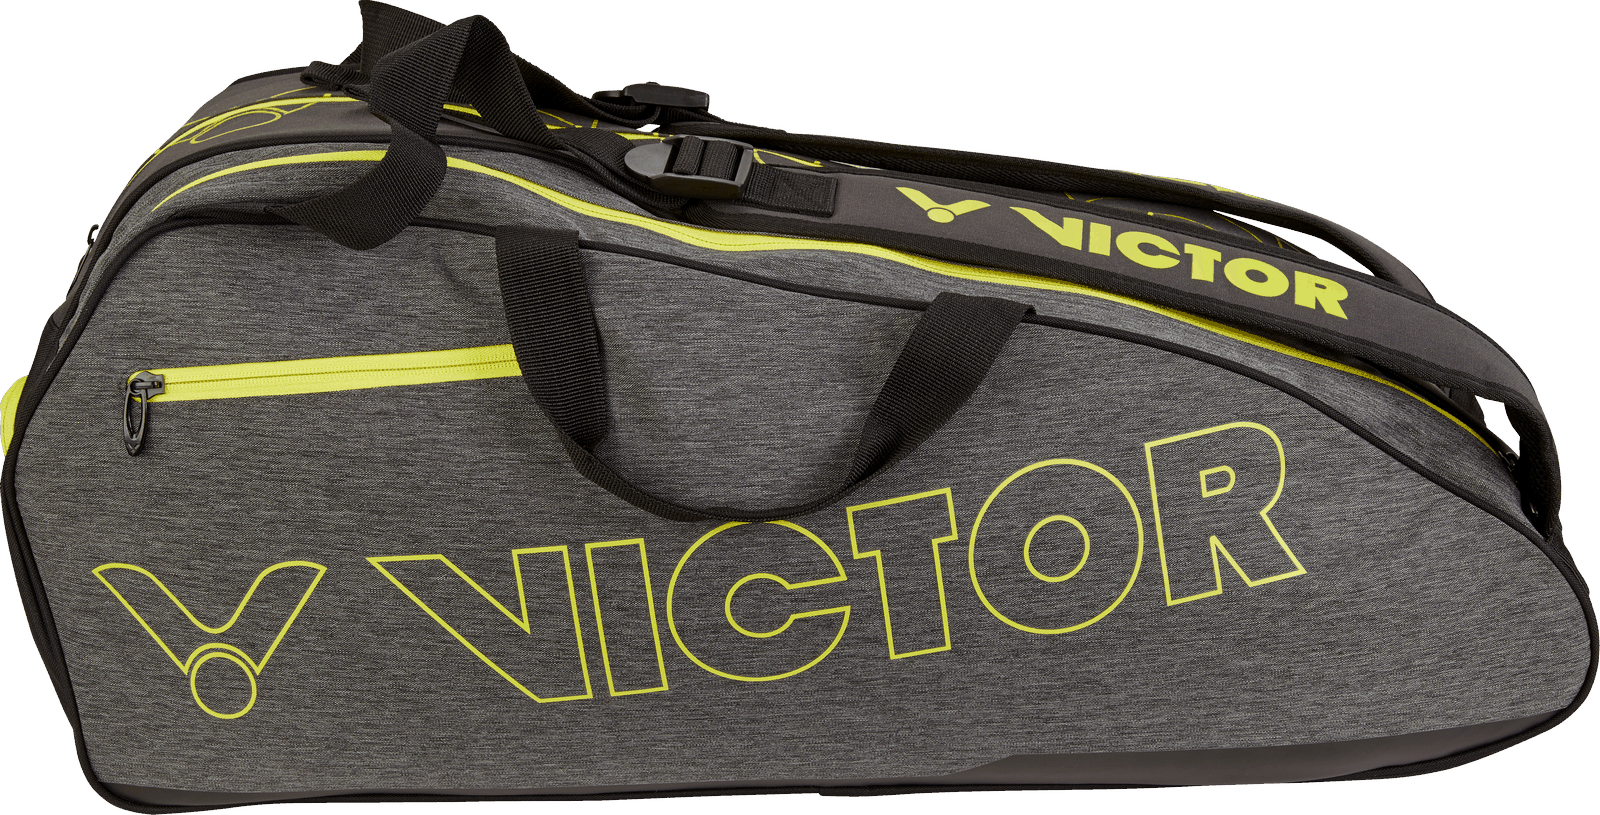 VICTOR Doublethermobag 9110 grey/yellow